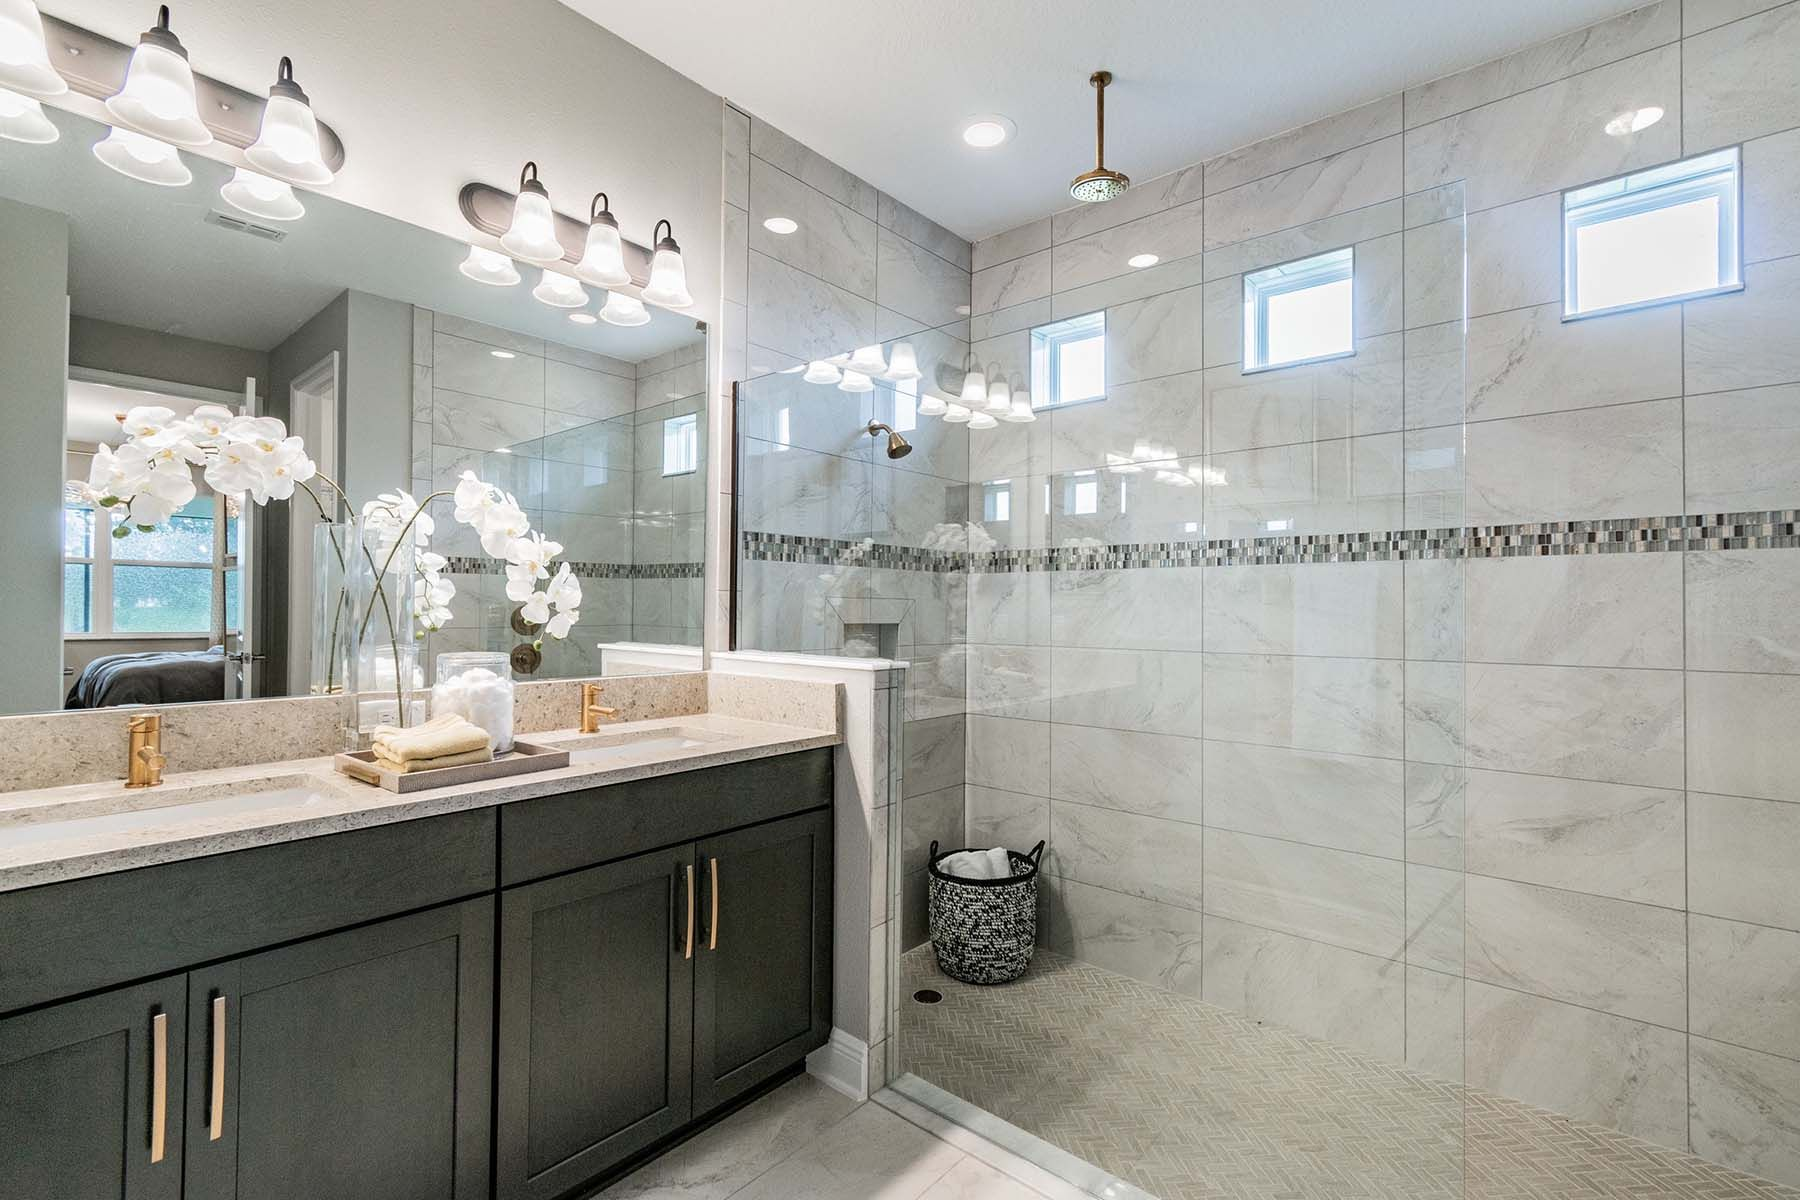 Bathroom featured in the Willow By M/I Homes in Tampa-St. Petersburg, FL